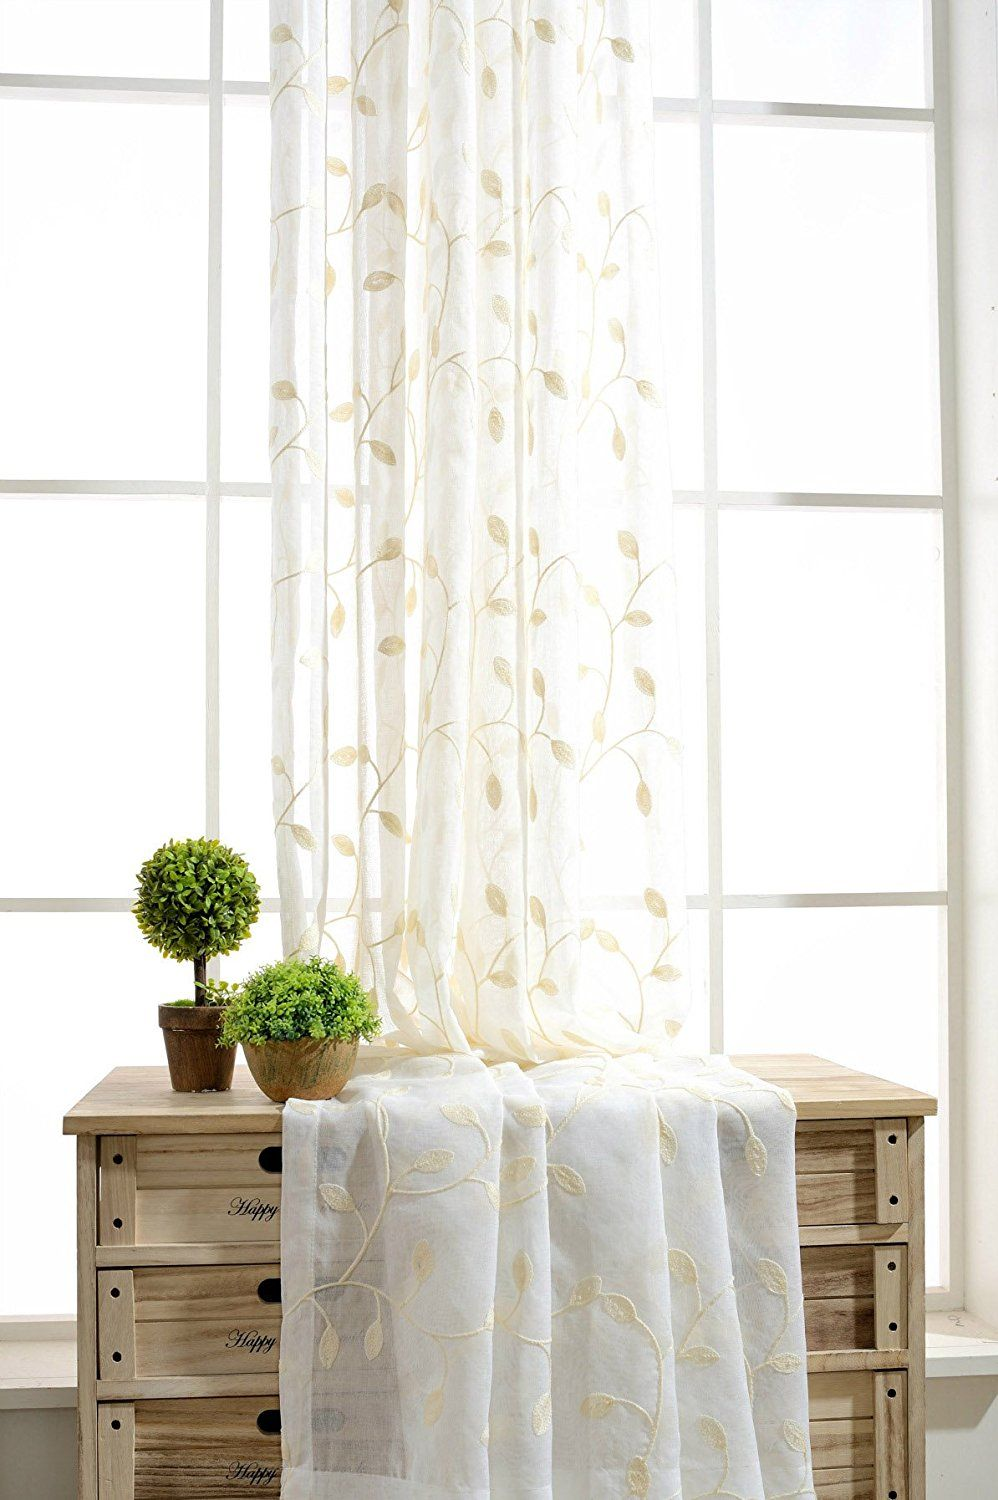 bf07357a10cea3907146a8dd0ca0a5f0 - Better Homes And Gardens Ivy Kitchen Curtain Set